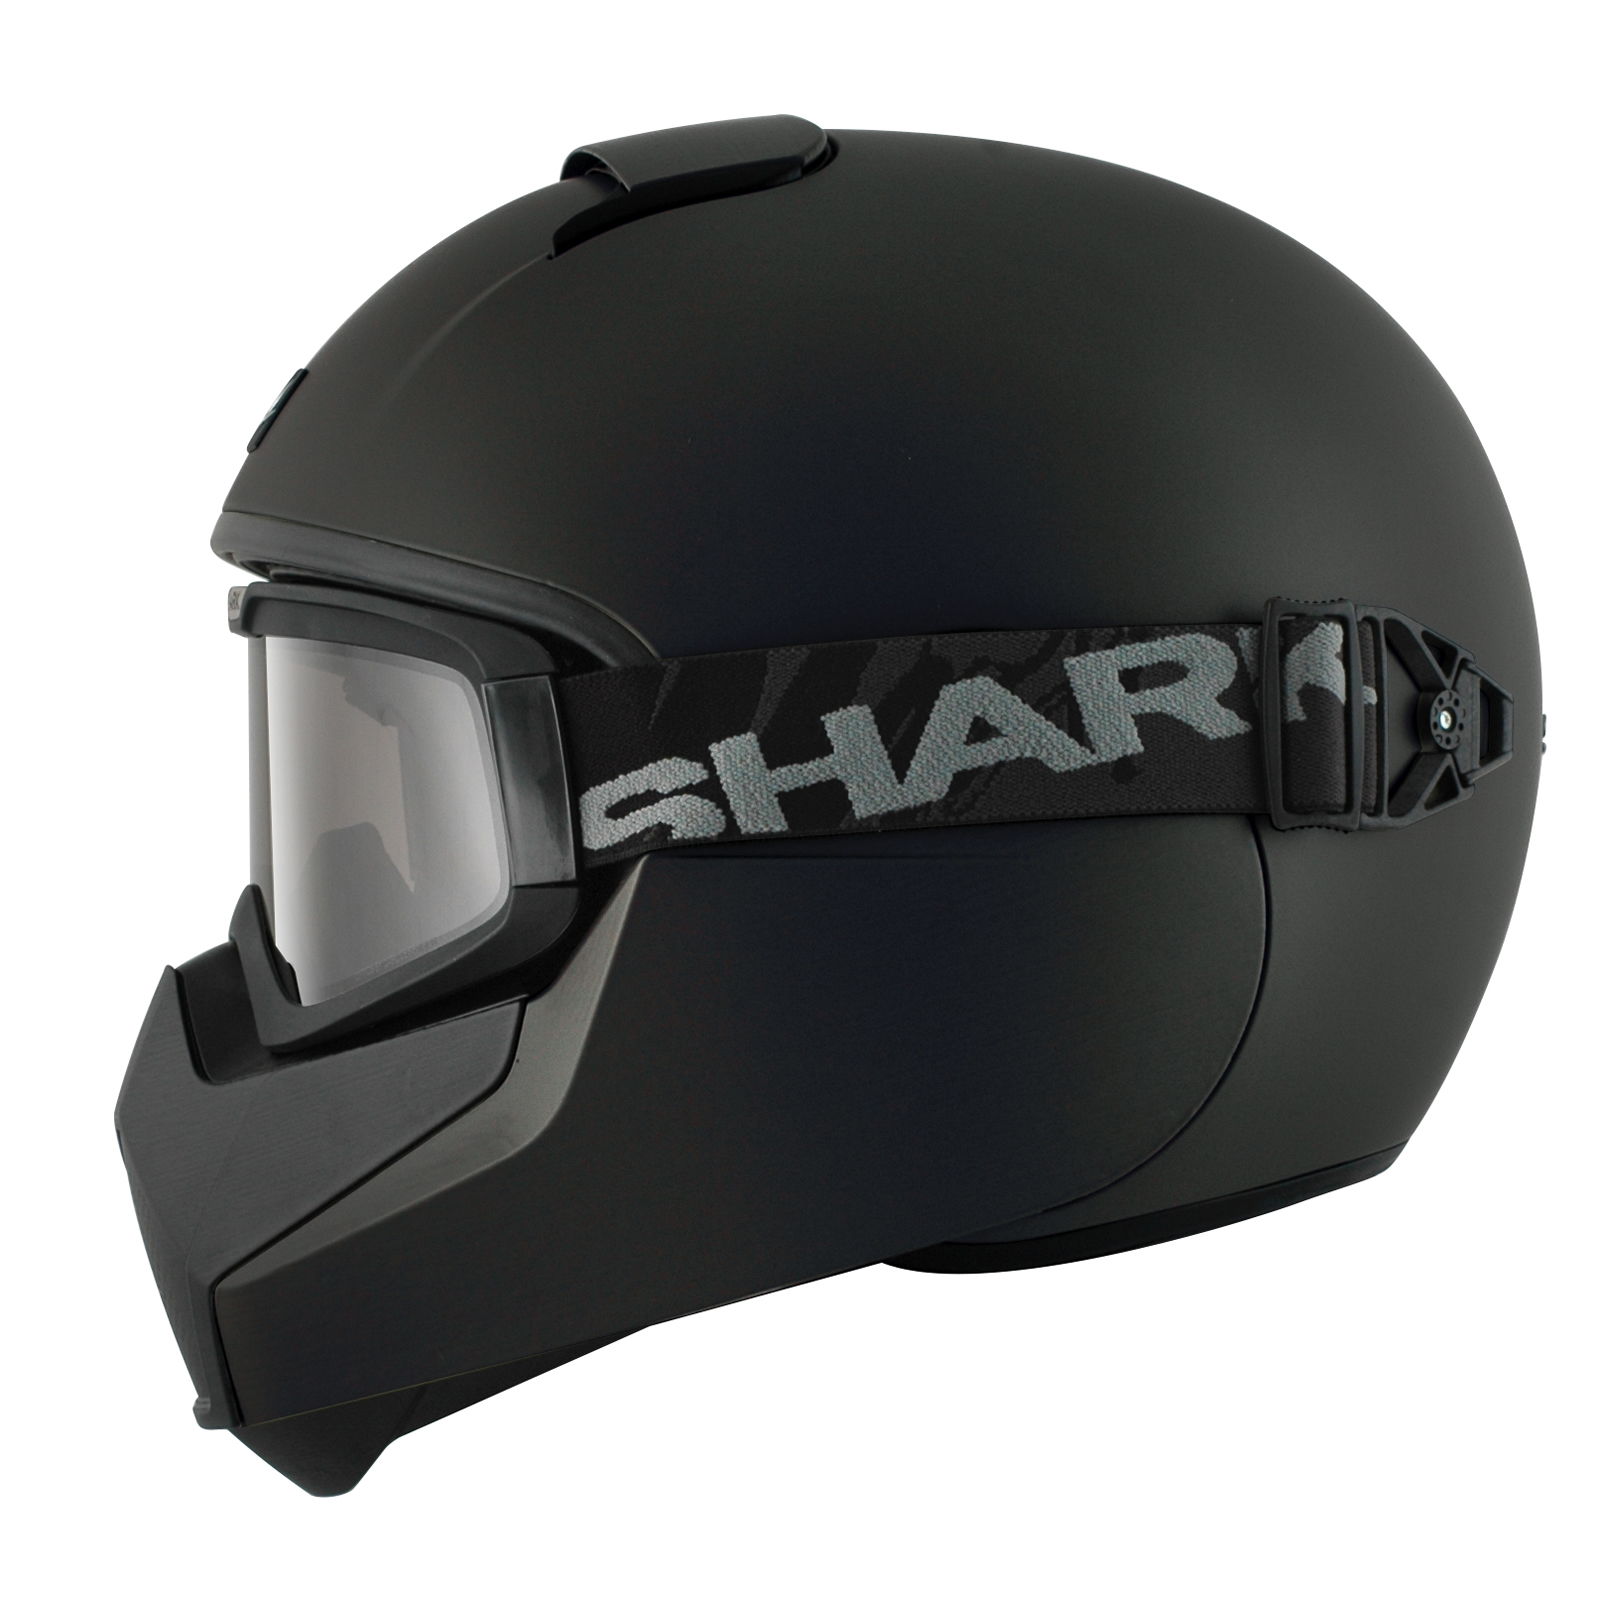 Shark Vancore Plain Matt Black Motorcycle Helmet